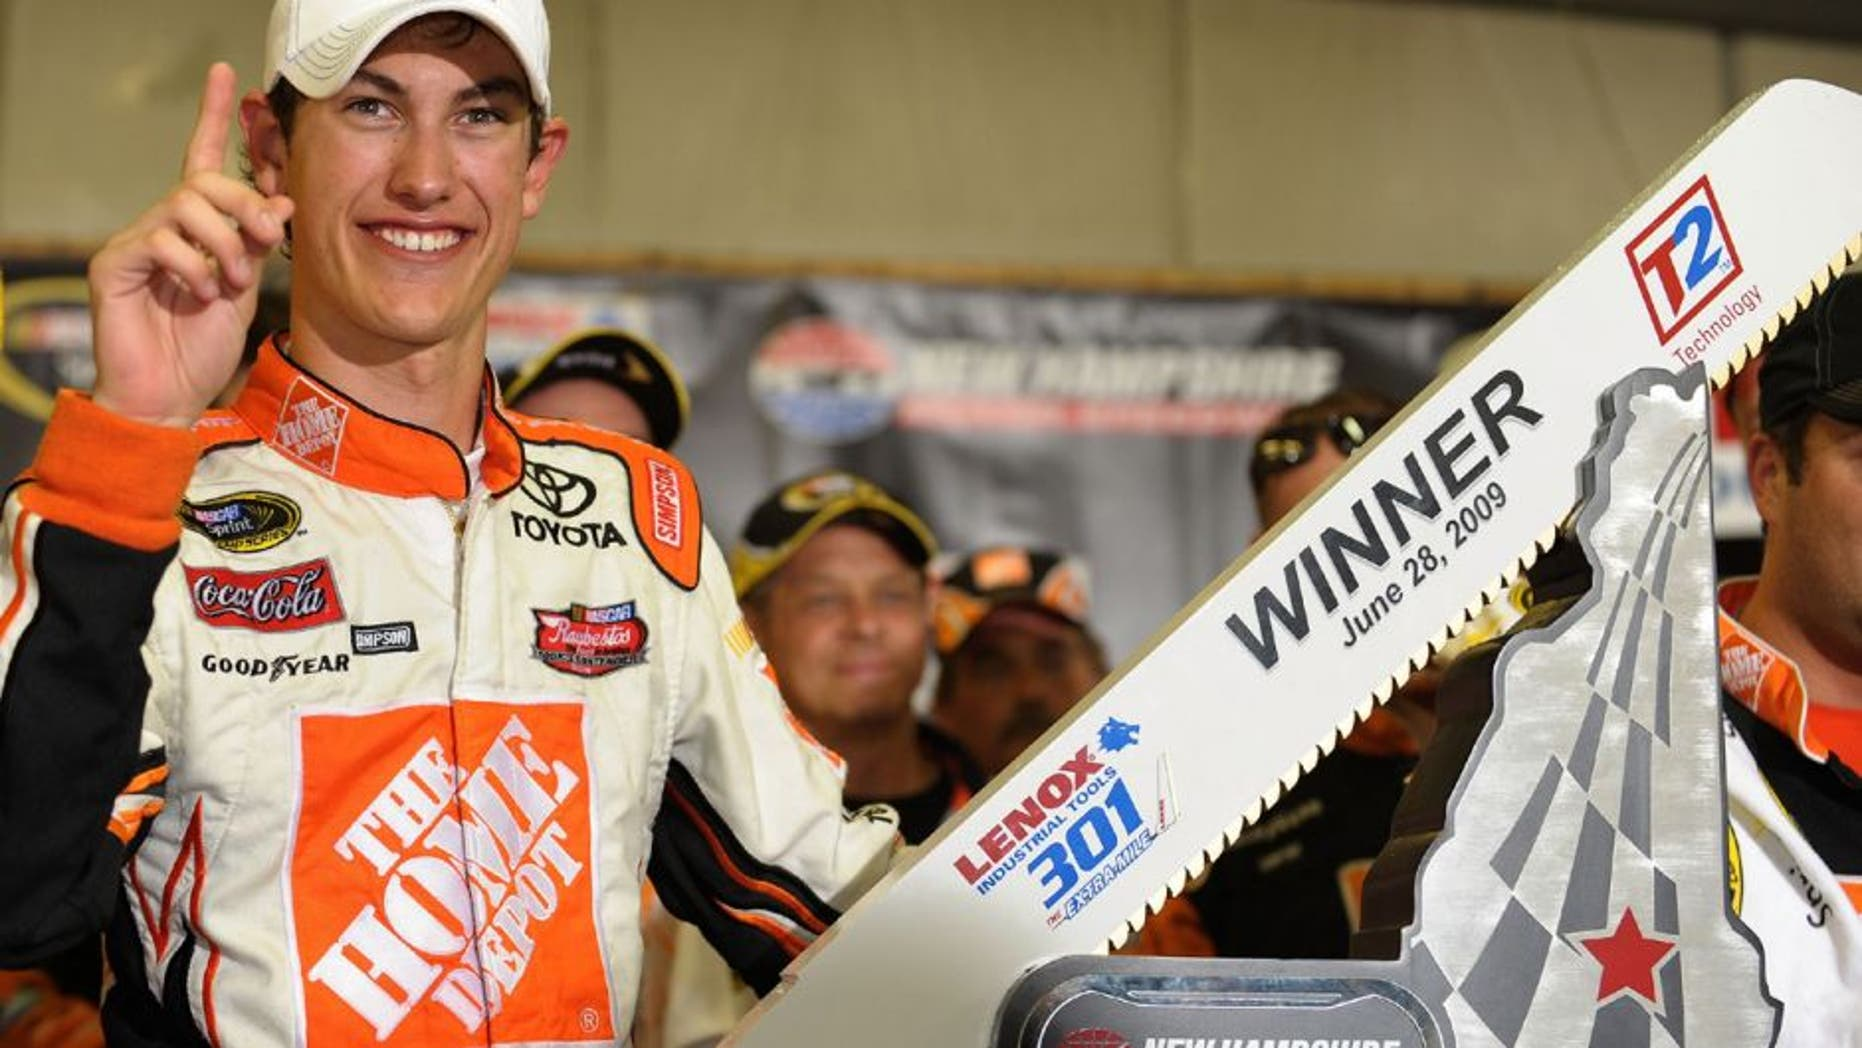 LOUDON, NH - JUNE 28: Joey Logano, driver of the #20 Home Depot Toyota, celebrates winning the NASCAR Sprint Cup Series LENOX Industrial Tools 301 at New Hampshire Motor Speedway on June 28, 2009 in Loudon, New Hampshire. Logano won the rain shortened race with 27 laps remaining. (Photo by Drew Hallowell/Getty Images for NASCAR)